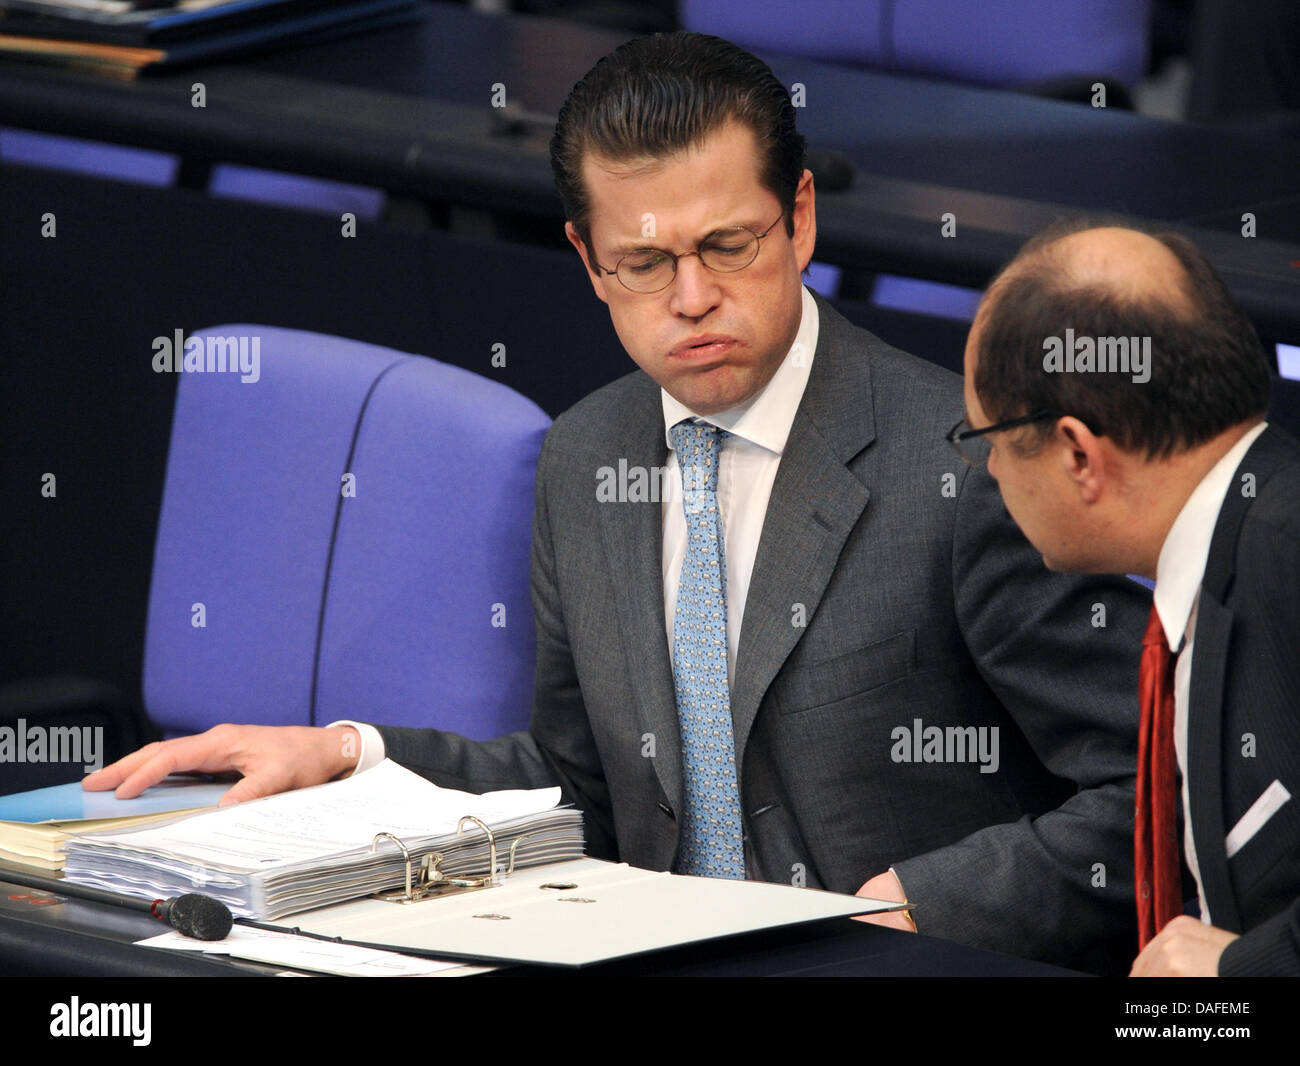 German Minister of Defence Karl-Theodor zu Guttenberg is pictured during a question time of the German Bundestag - Stock Image